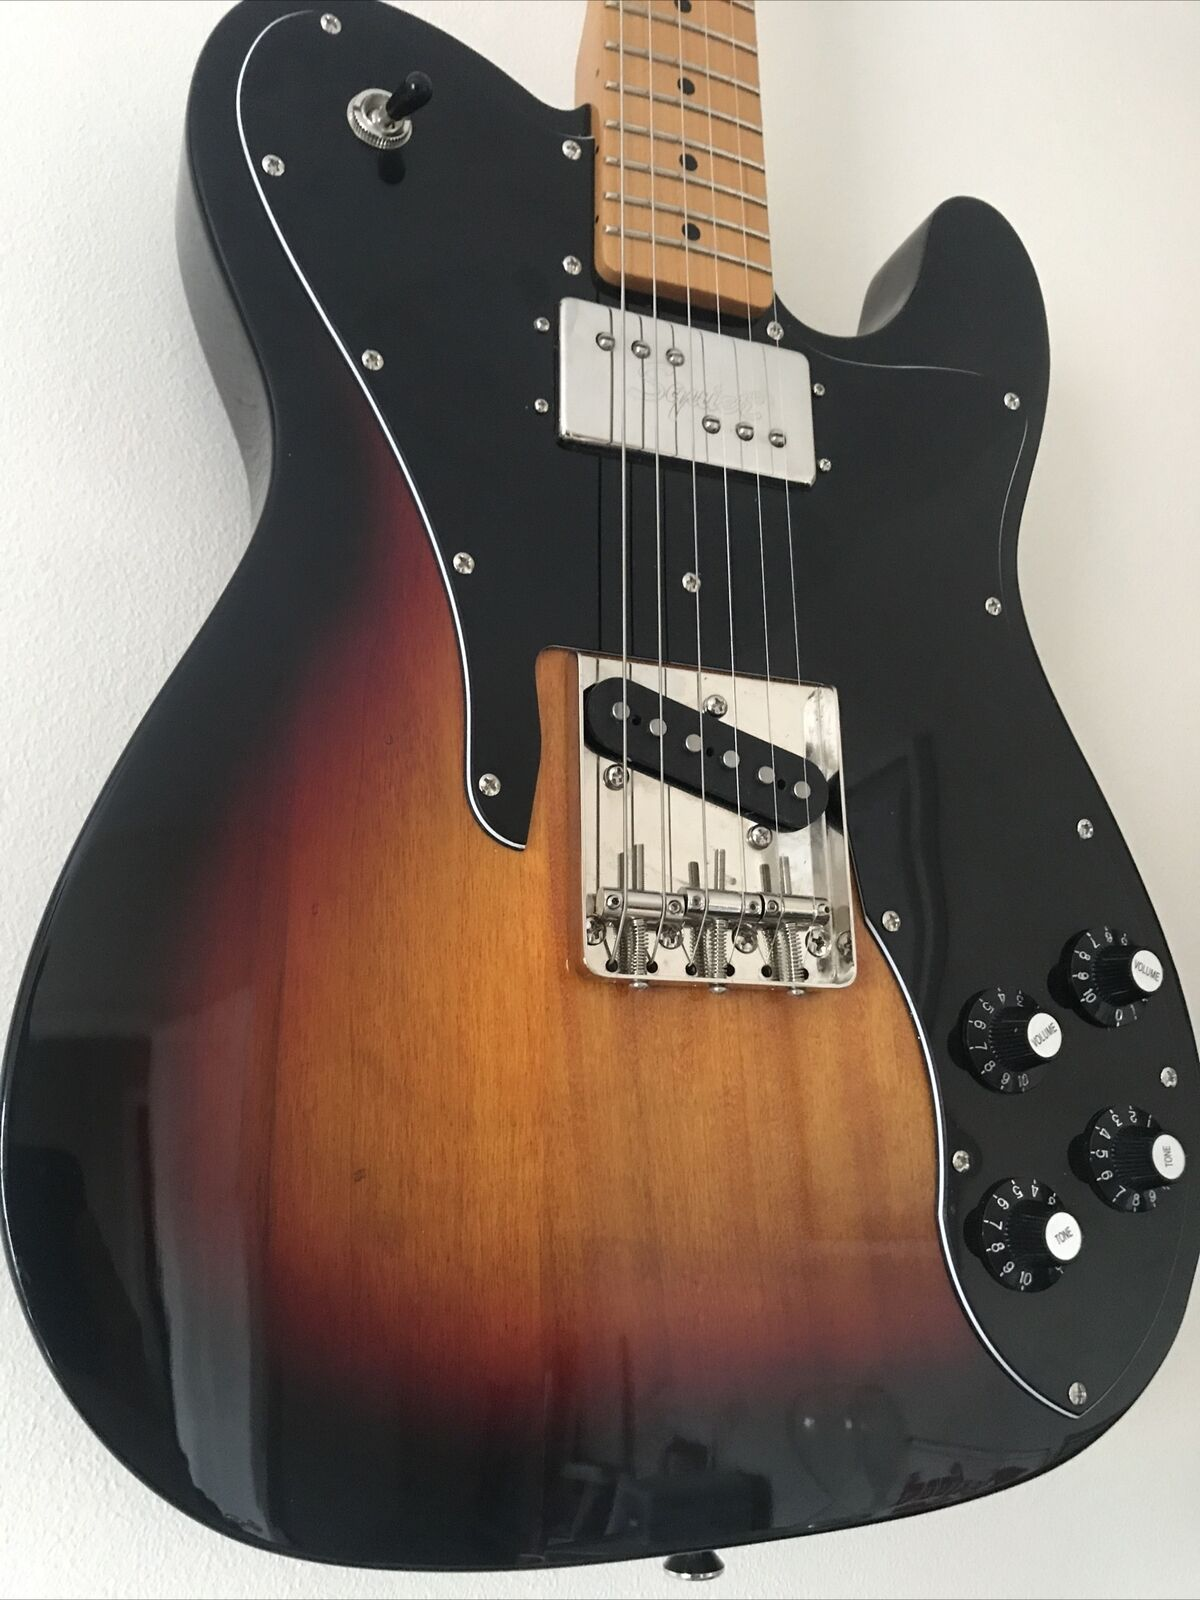 This Squier Telecaster electric guitar is for sale - Squier Clasic Vibe 70s Telecaster Custom